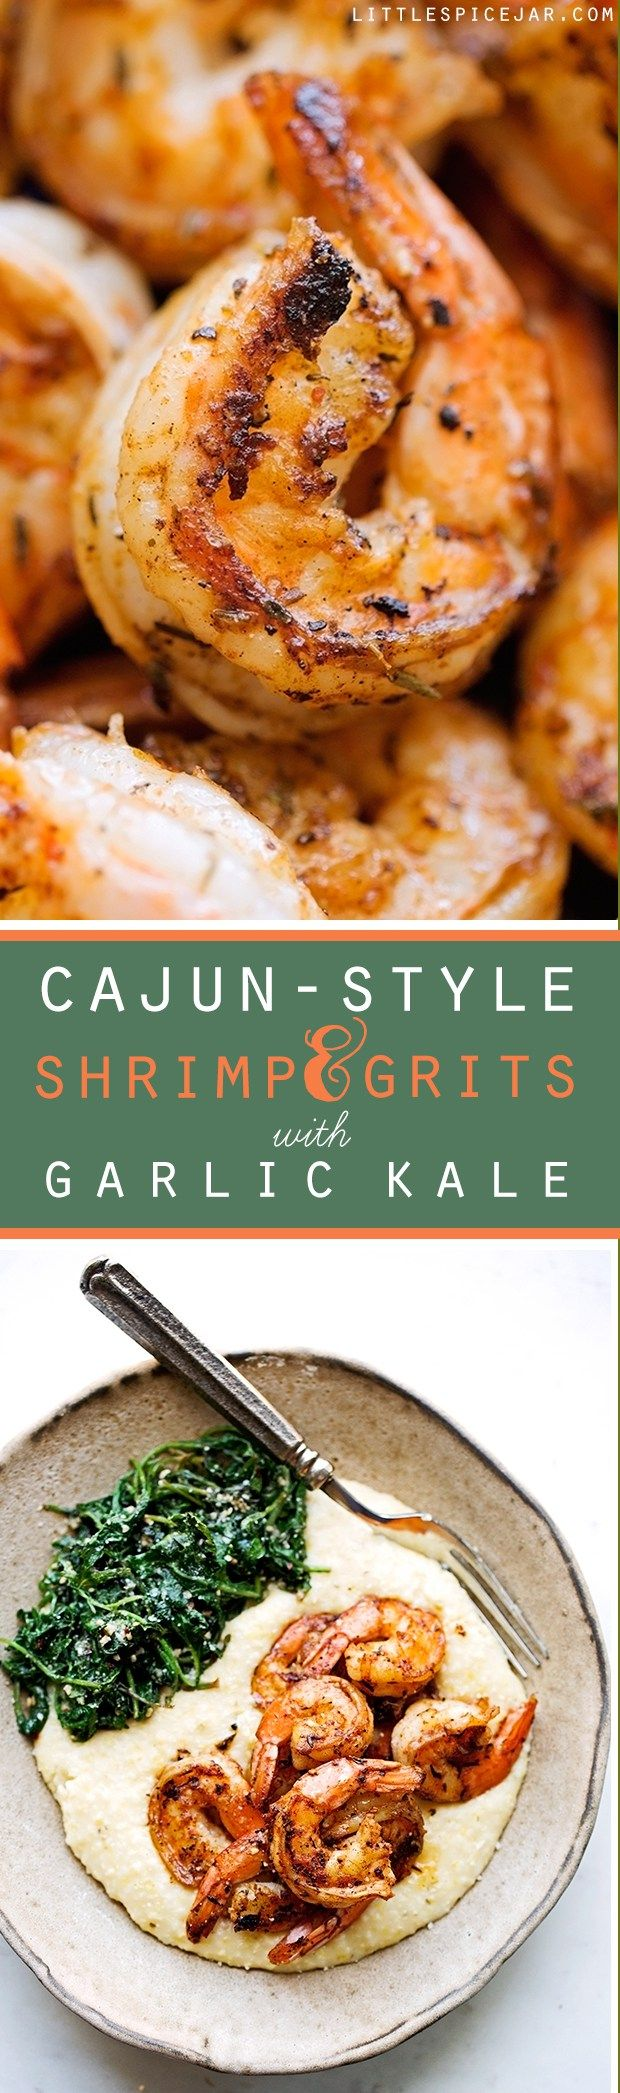 Cajun Shrimp and Grits - warm comfort food that's been lightened up! Perfect for Sunday brunching. #brunch #shrimpandgrits #cajunshrimp | Littlespicejar.com